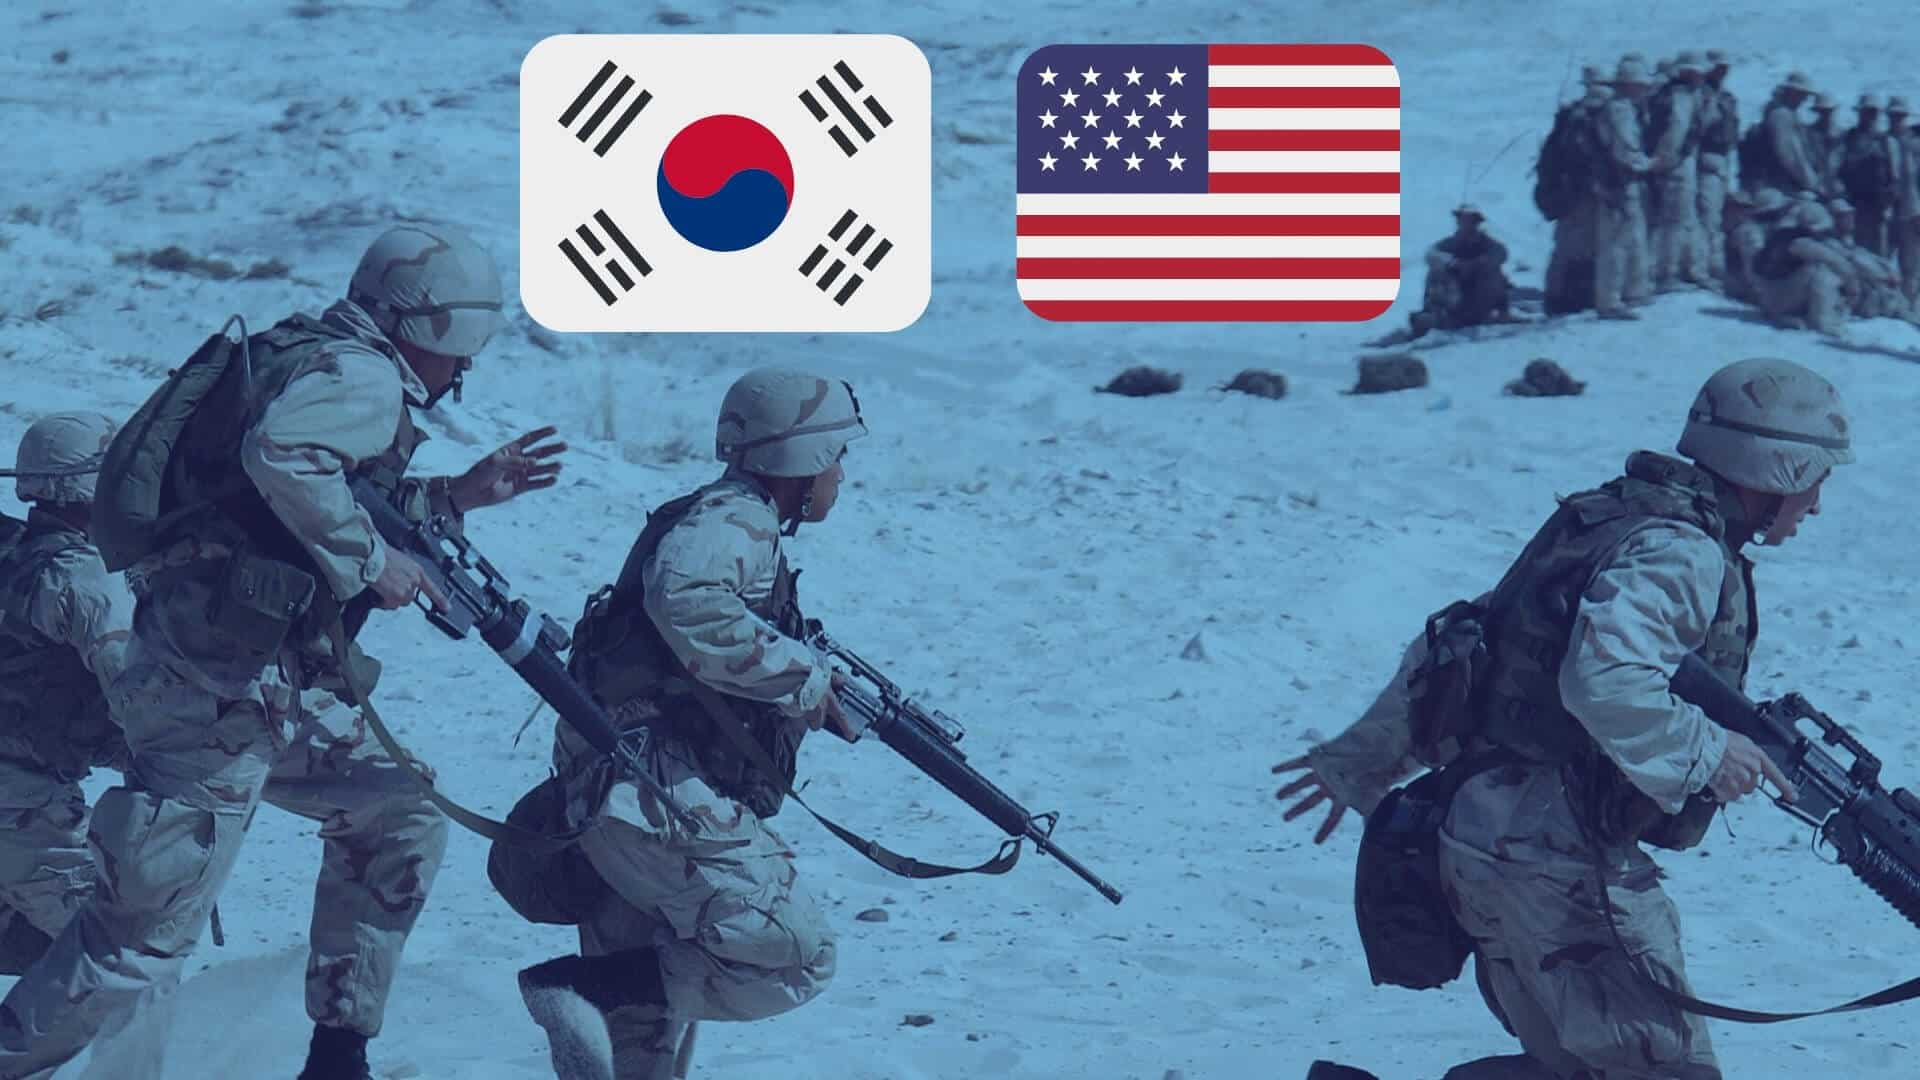 S.Korea and US to Stage Joint Military Exercises for Denuclearization of Korean Peninsula